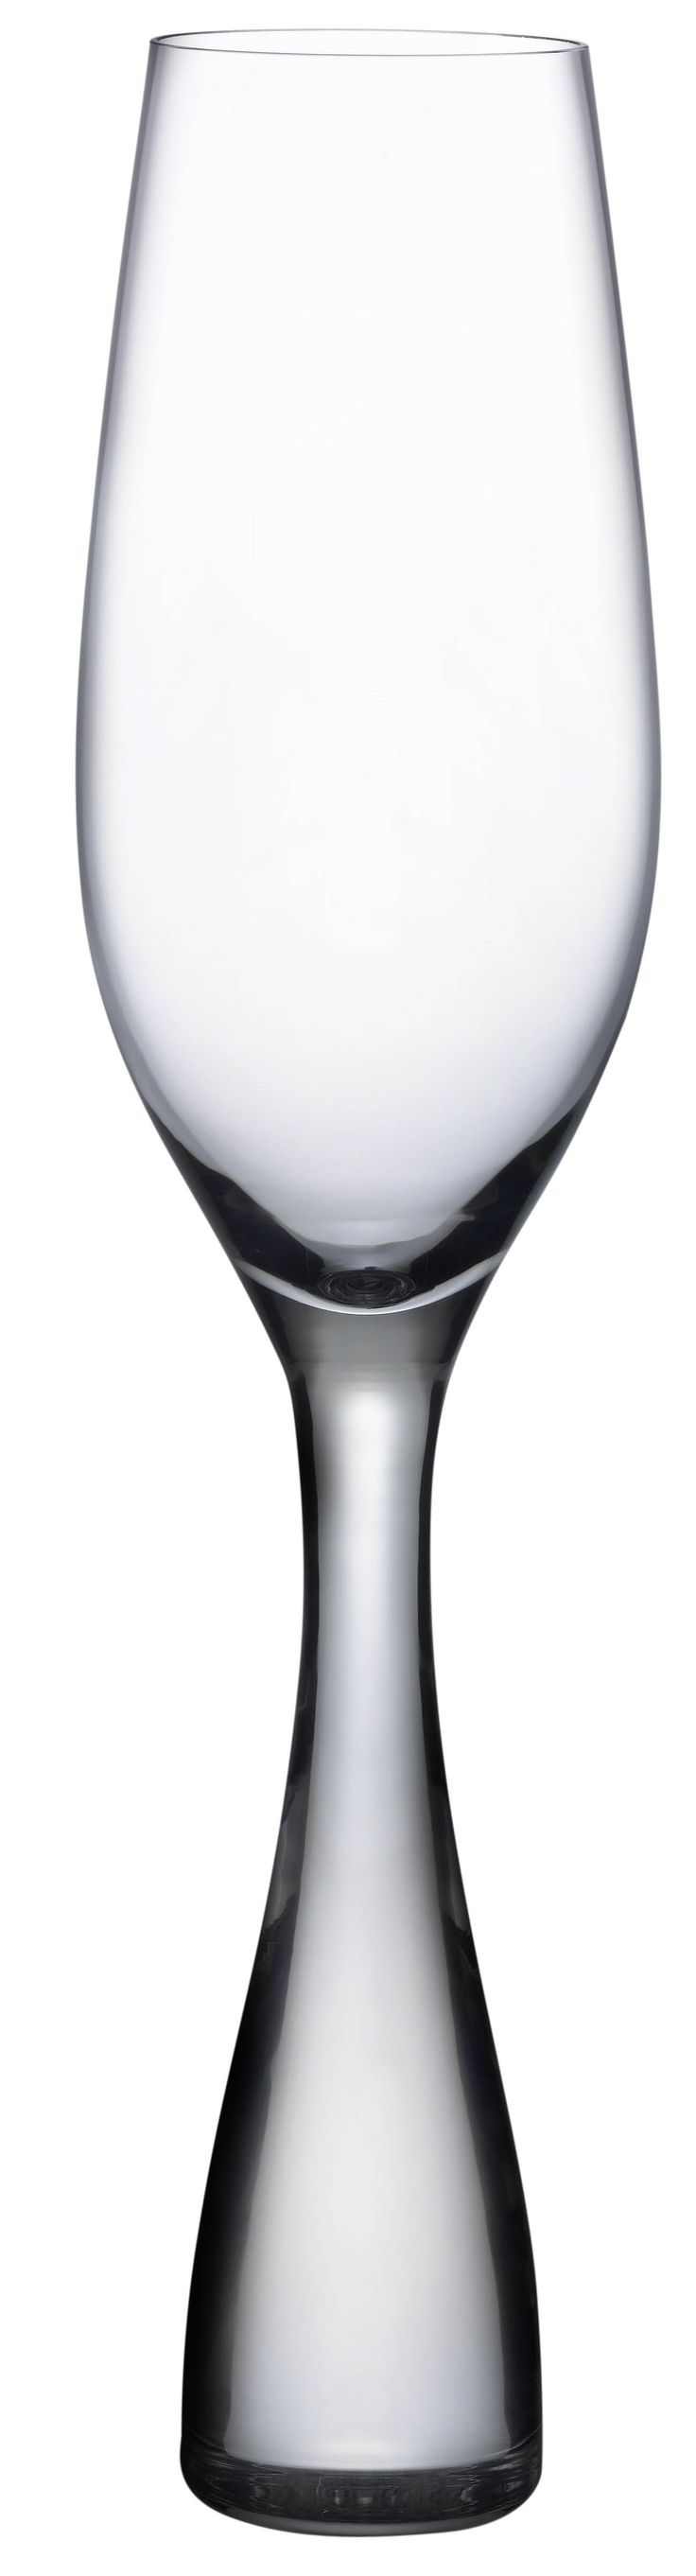 Champagne Glass - Wine Party Collection #nude #collection #design #glass